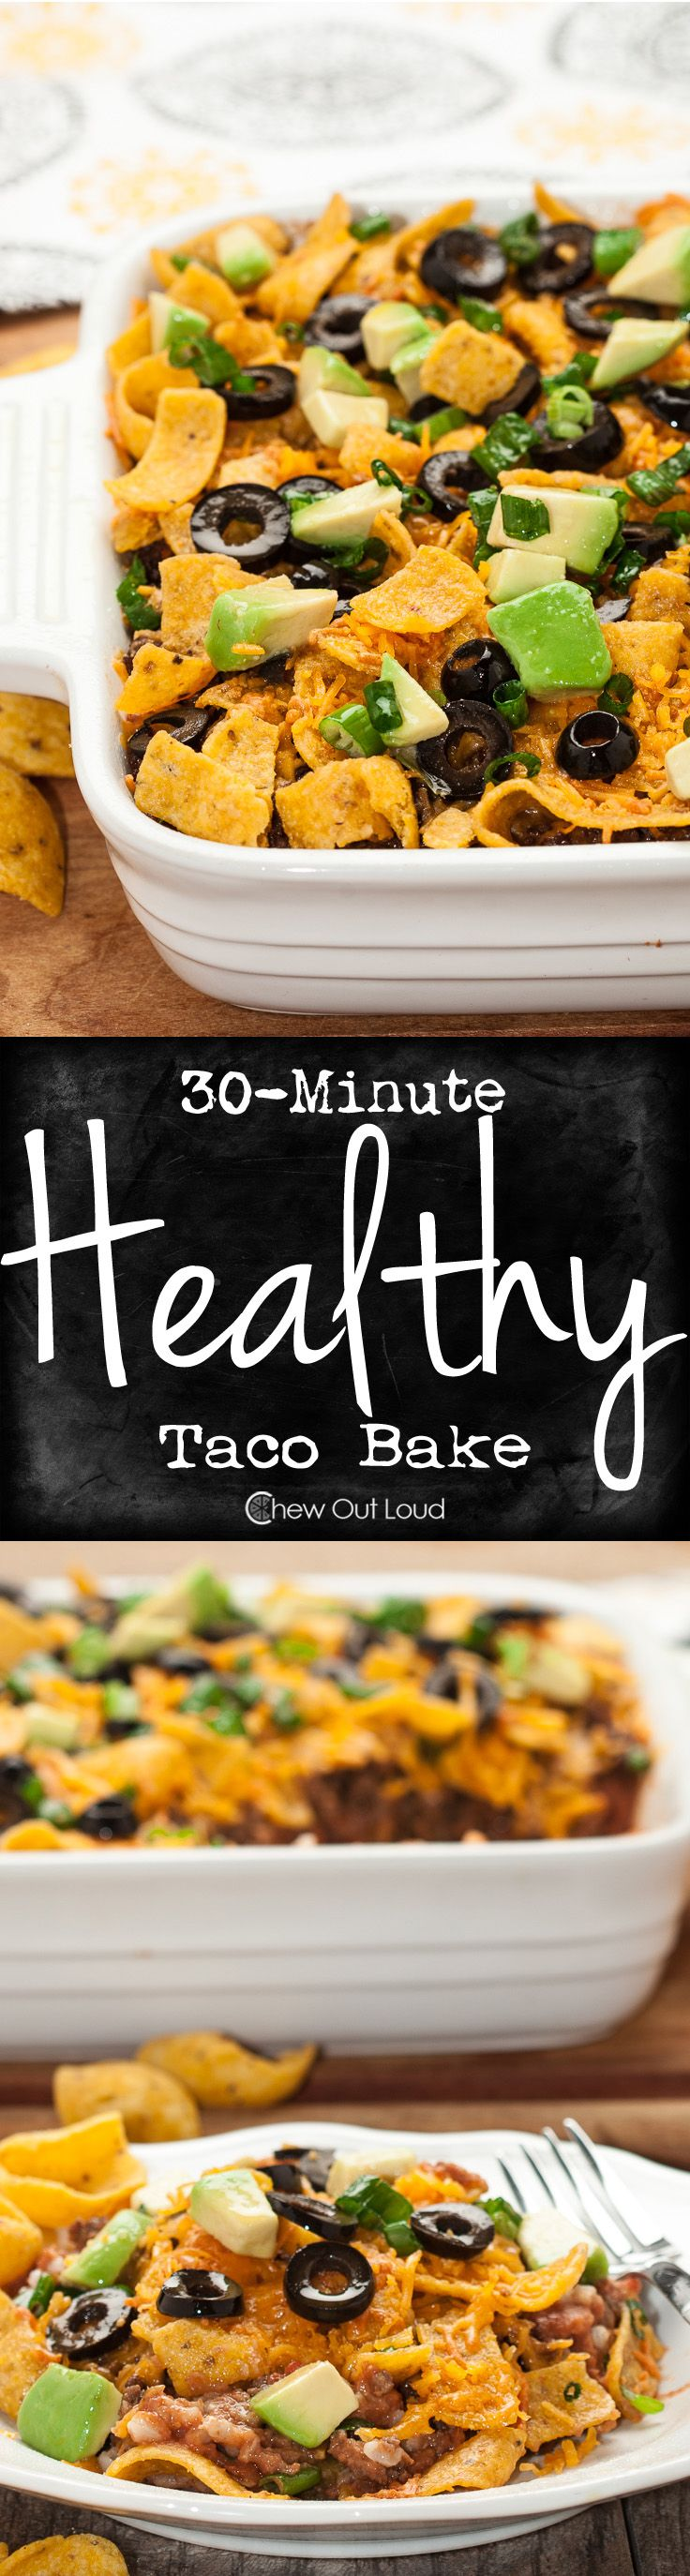 30-Minute Healthy Taco Casserole is super fast, all-natural, and tastes incredible. The perfect weeknight dinner for picky eaters. #recipe #mexican #texmex